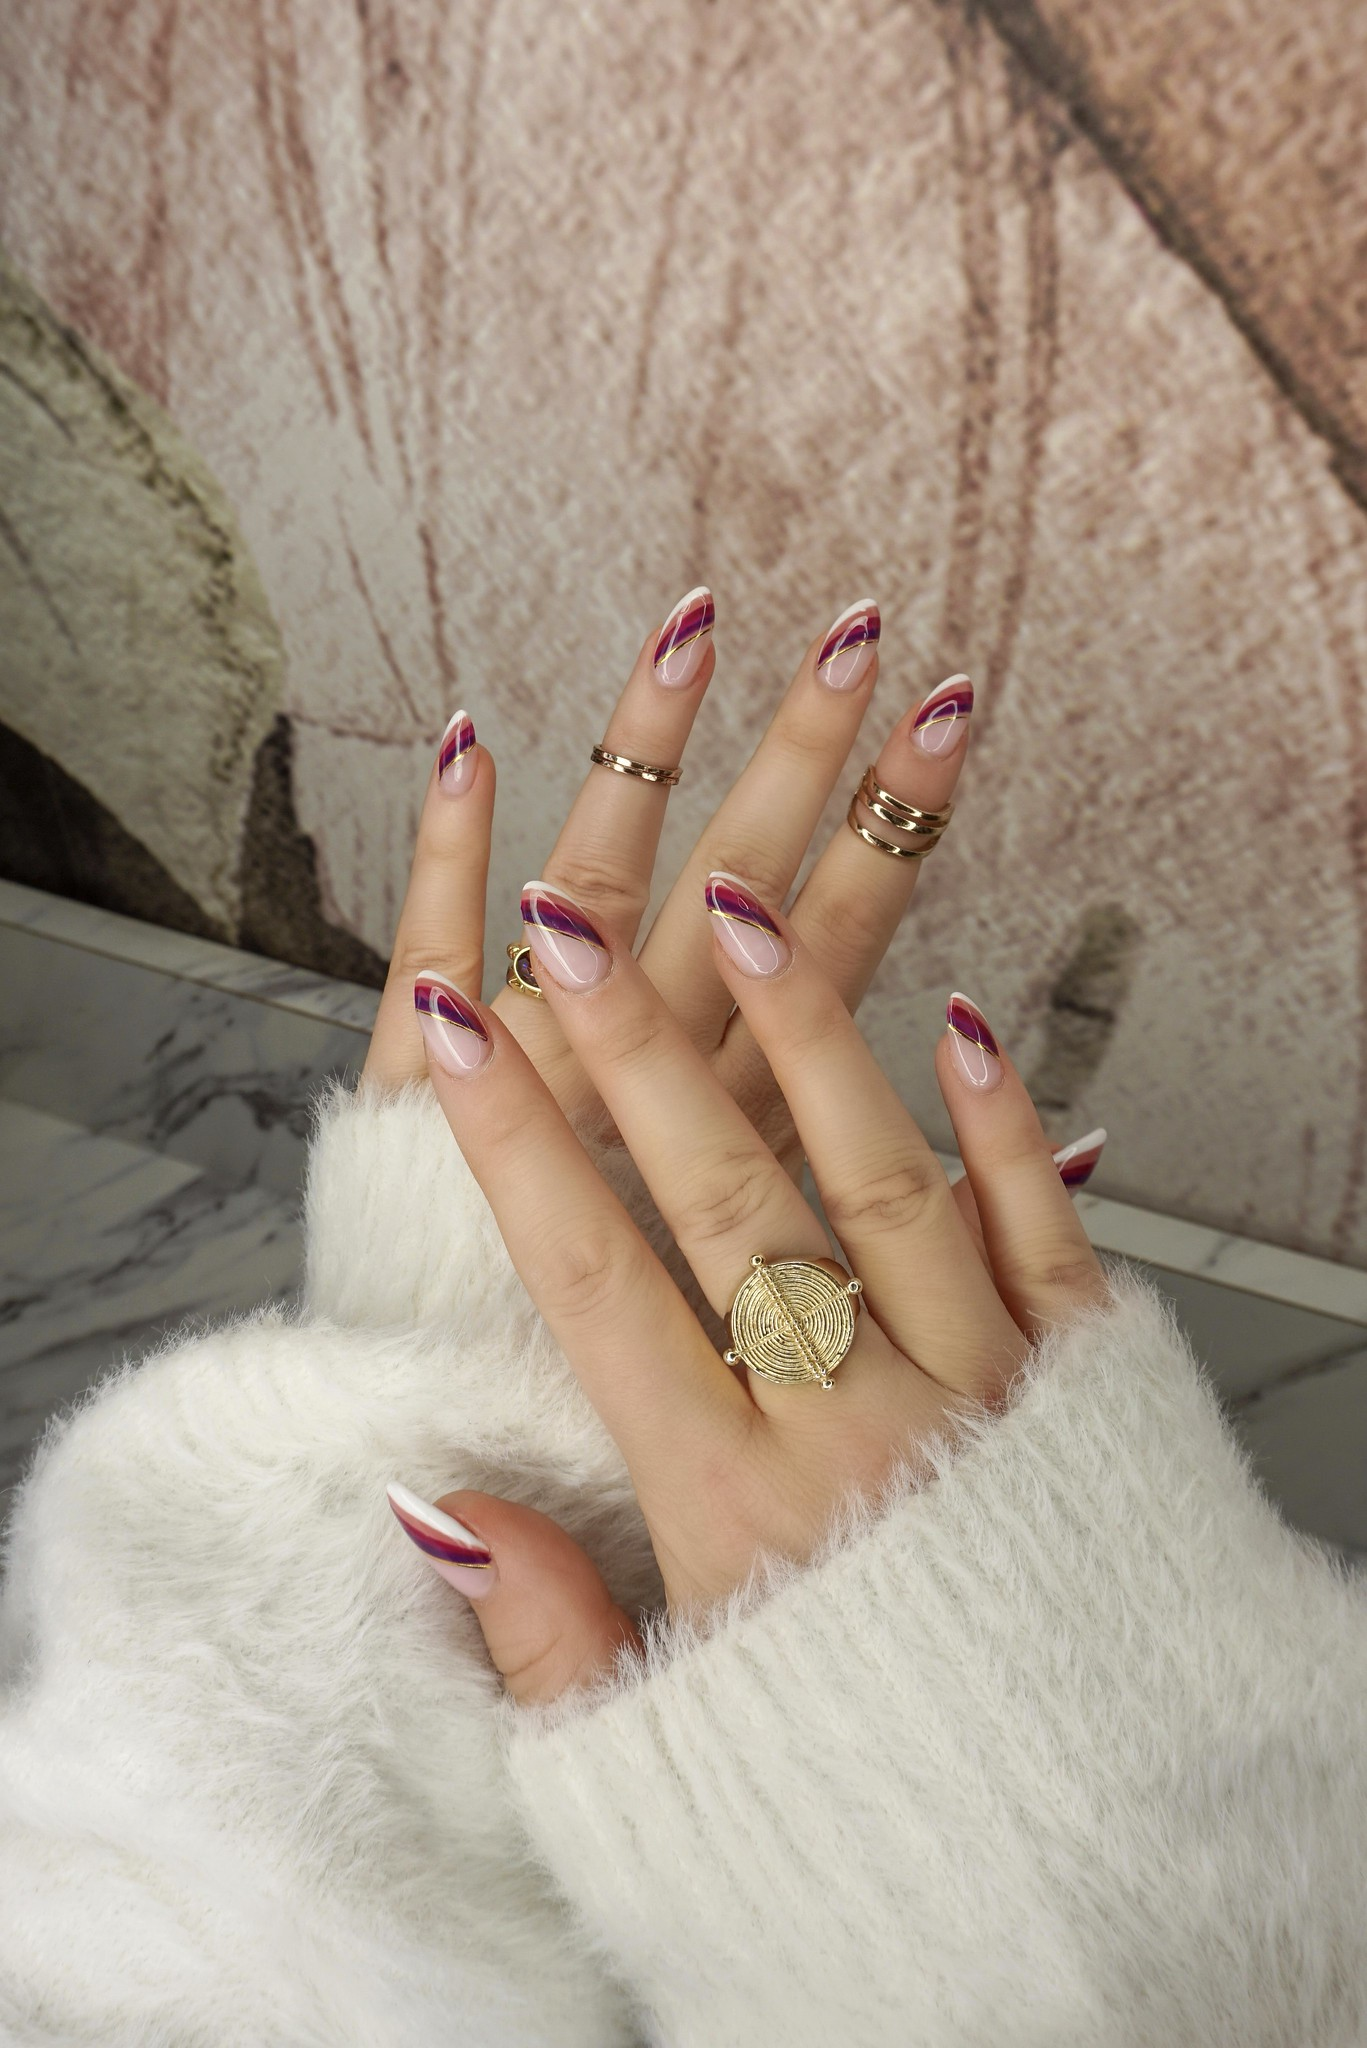 Fall French Twist Nails | Unique French Manicure | Fall Nails | Thanksgiving Nails | November Nails | Nail Ideas | Nail Art Inspiration | Nail Designs | Autumn Rainbow Mani | Gold Rings | Almond Shaped Nails